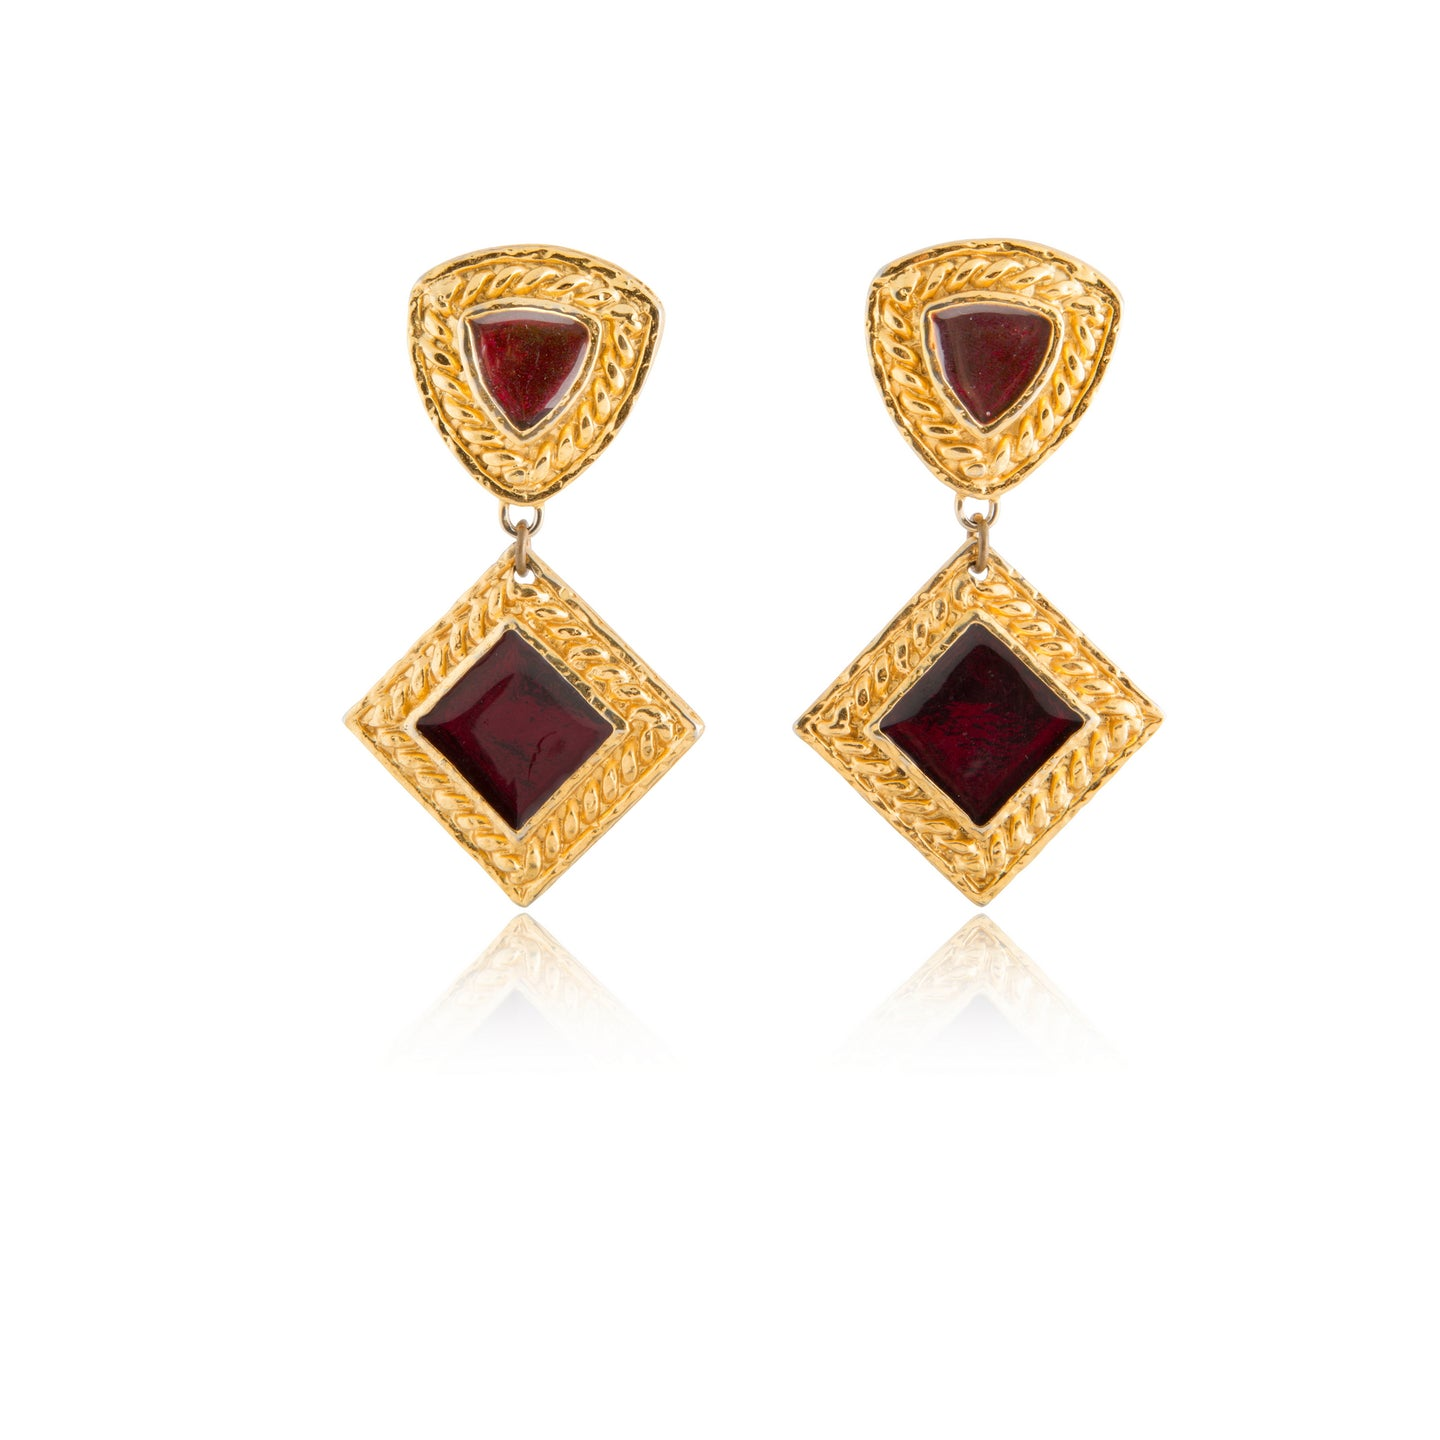 Vintage Edouard Rambaud Scarlet Earrings